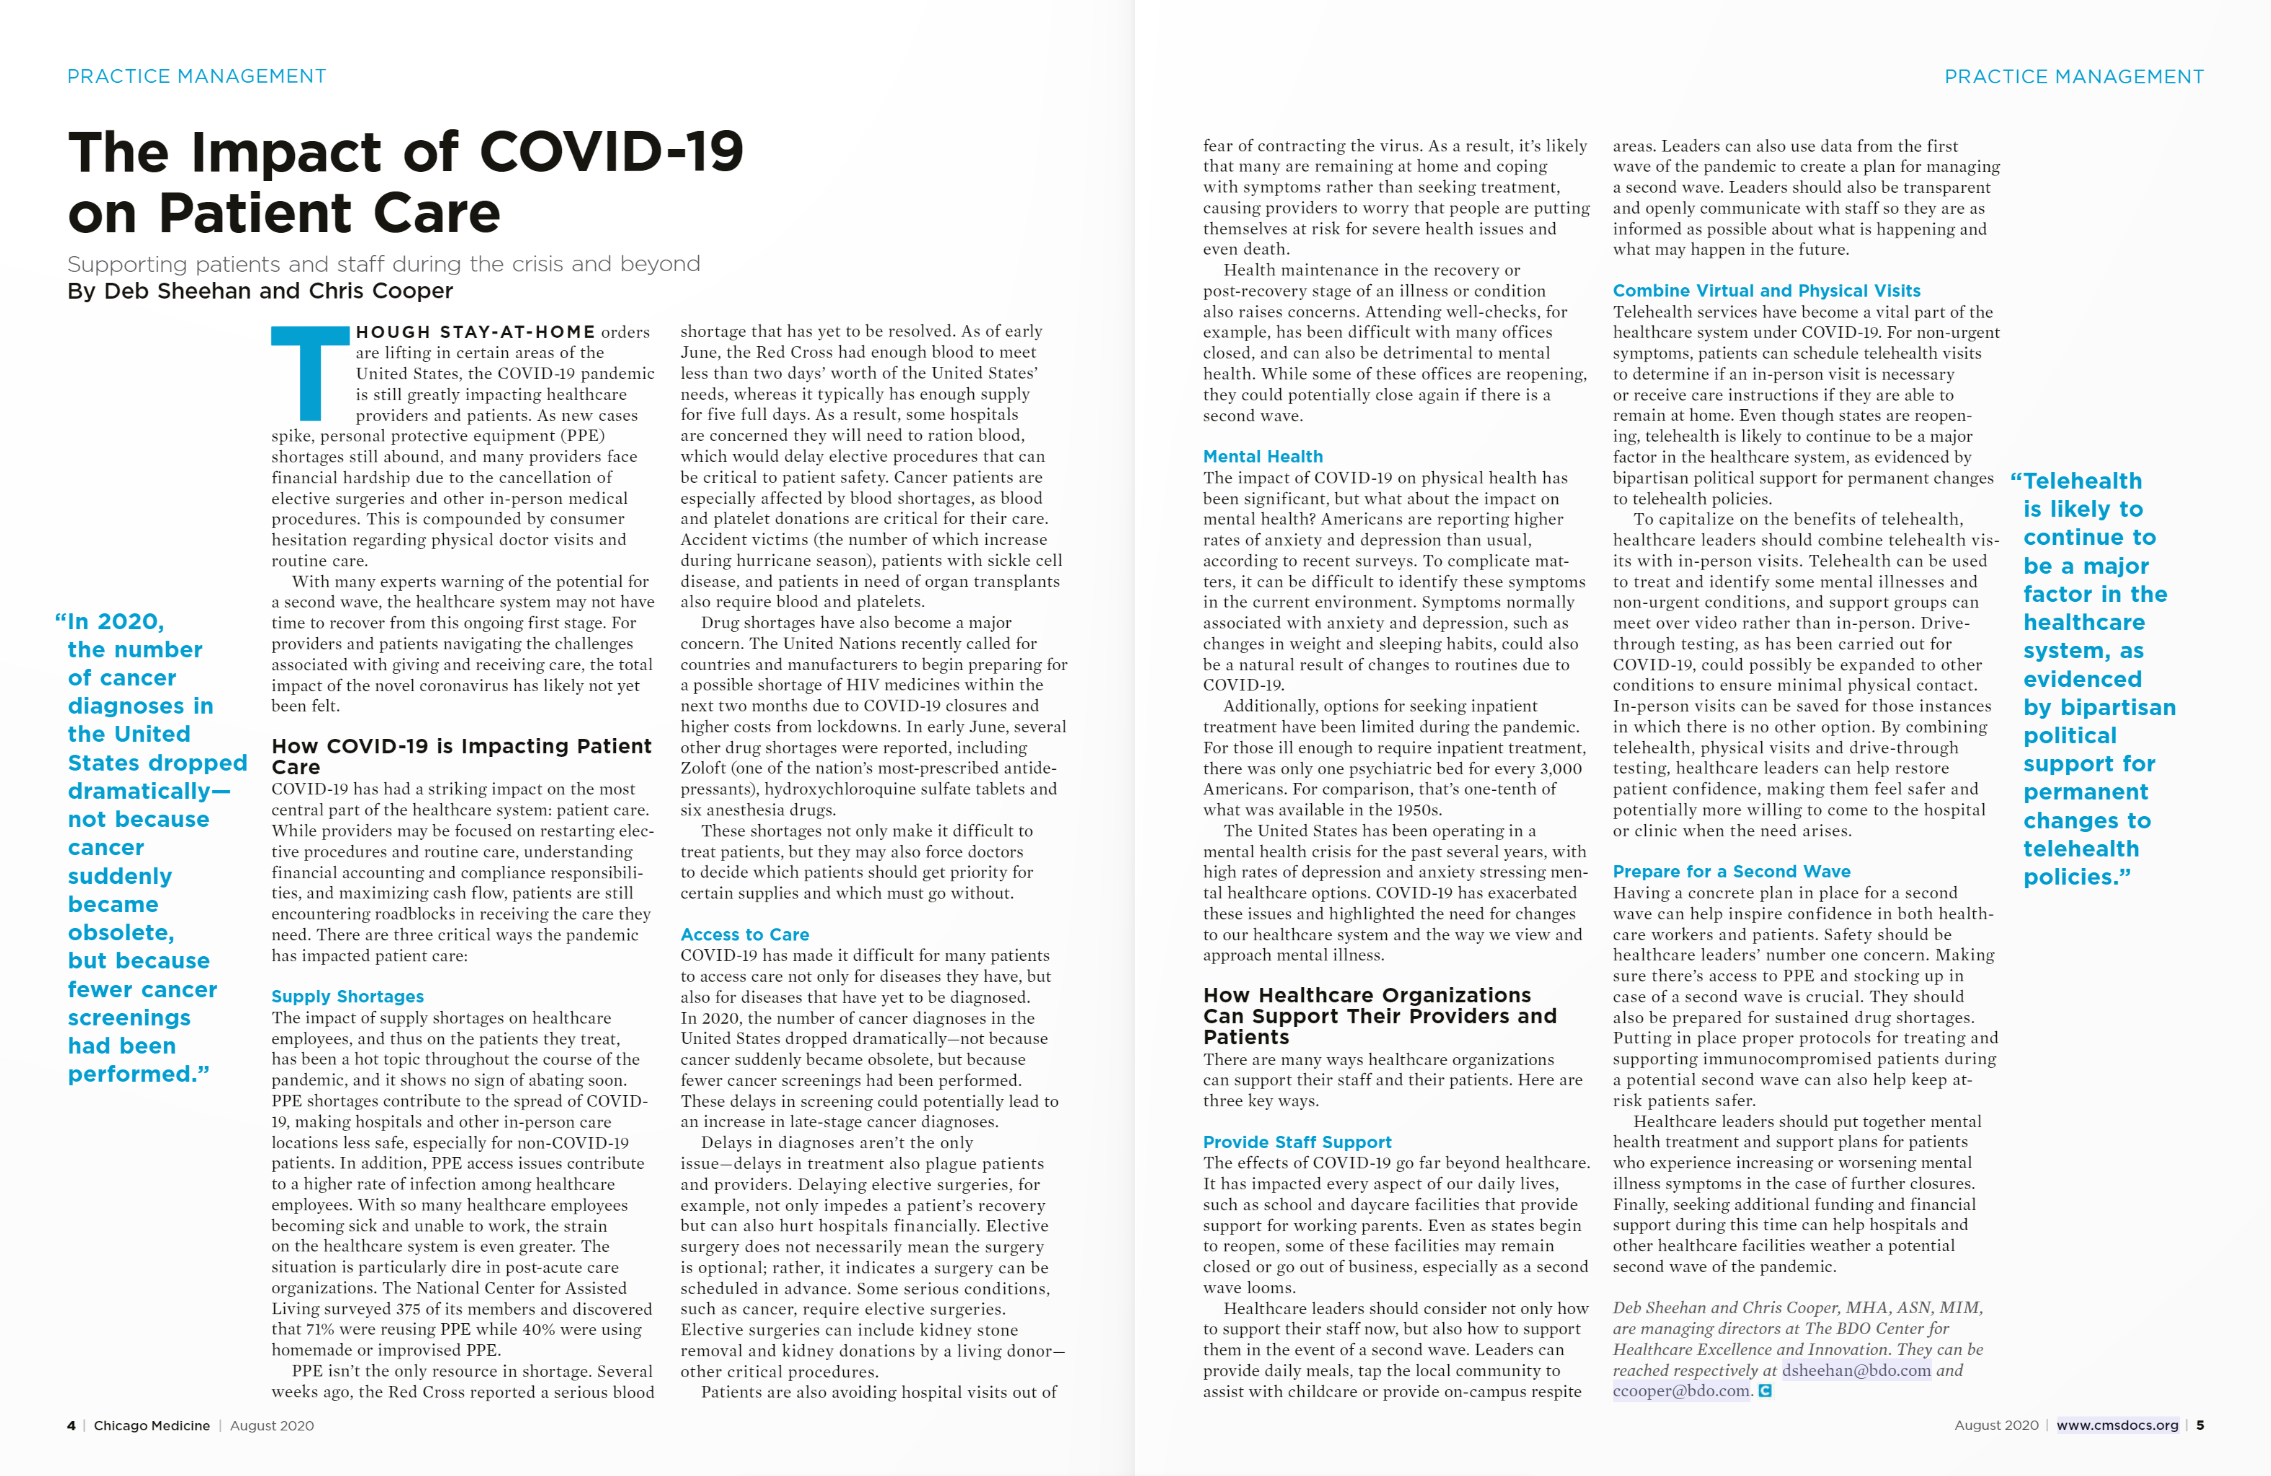 The Impact of COVID-19 on Patient Care